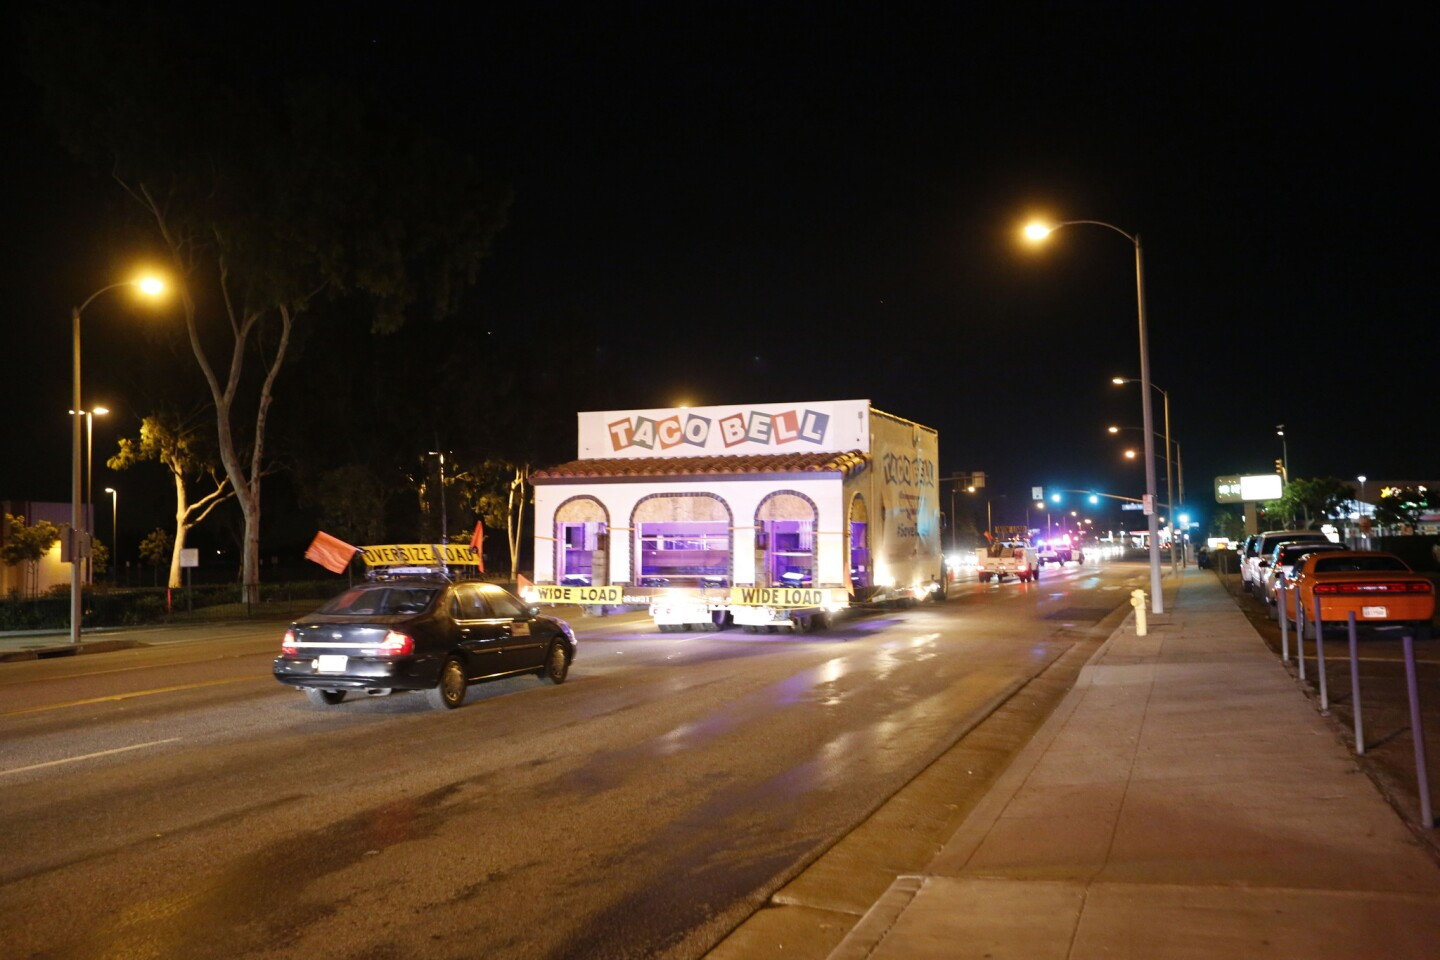 The original Taco Bell restaurant, located in Downey, was moved via a truck to the company's headquarters in Irvine.